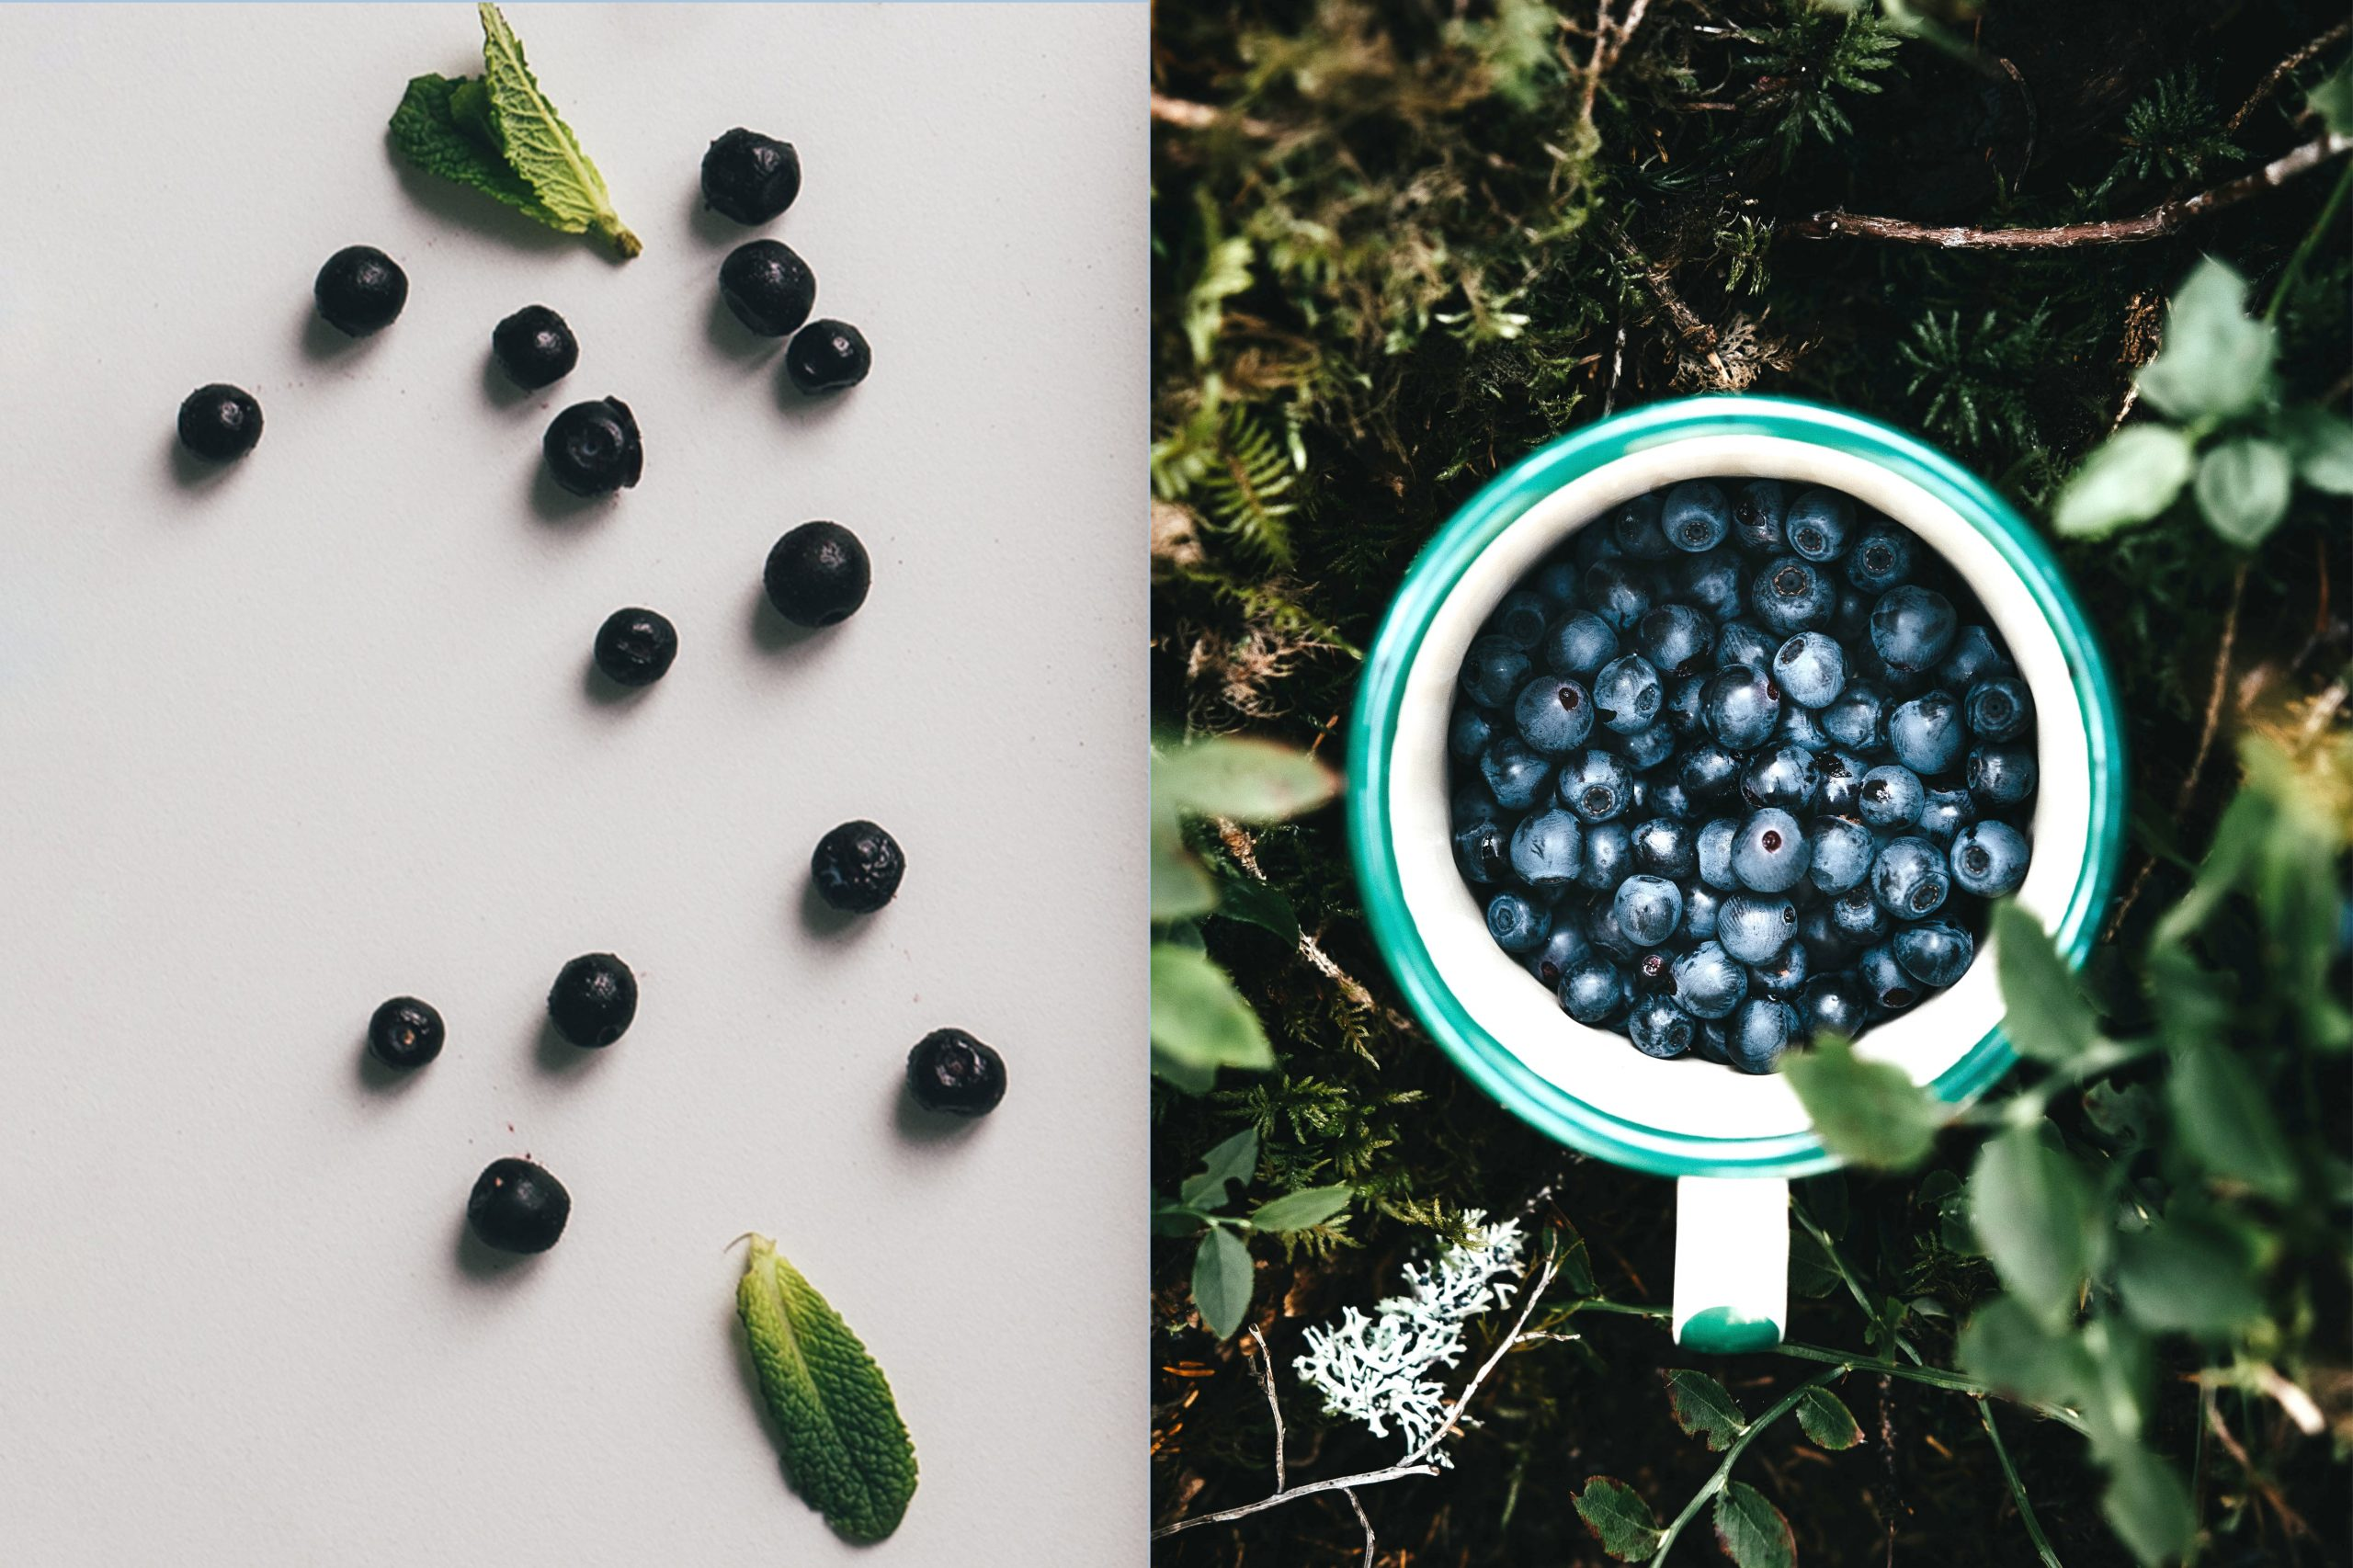 net carbs, low carb, carbs blueberries contains, keto fruits